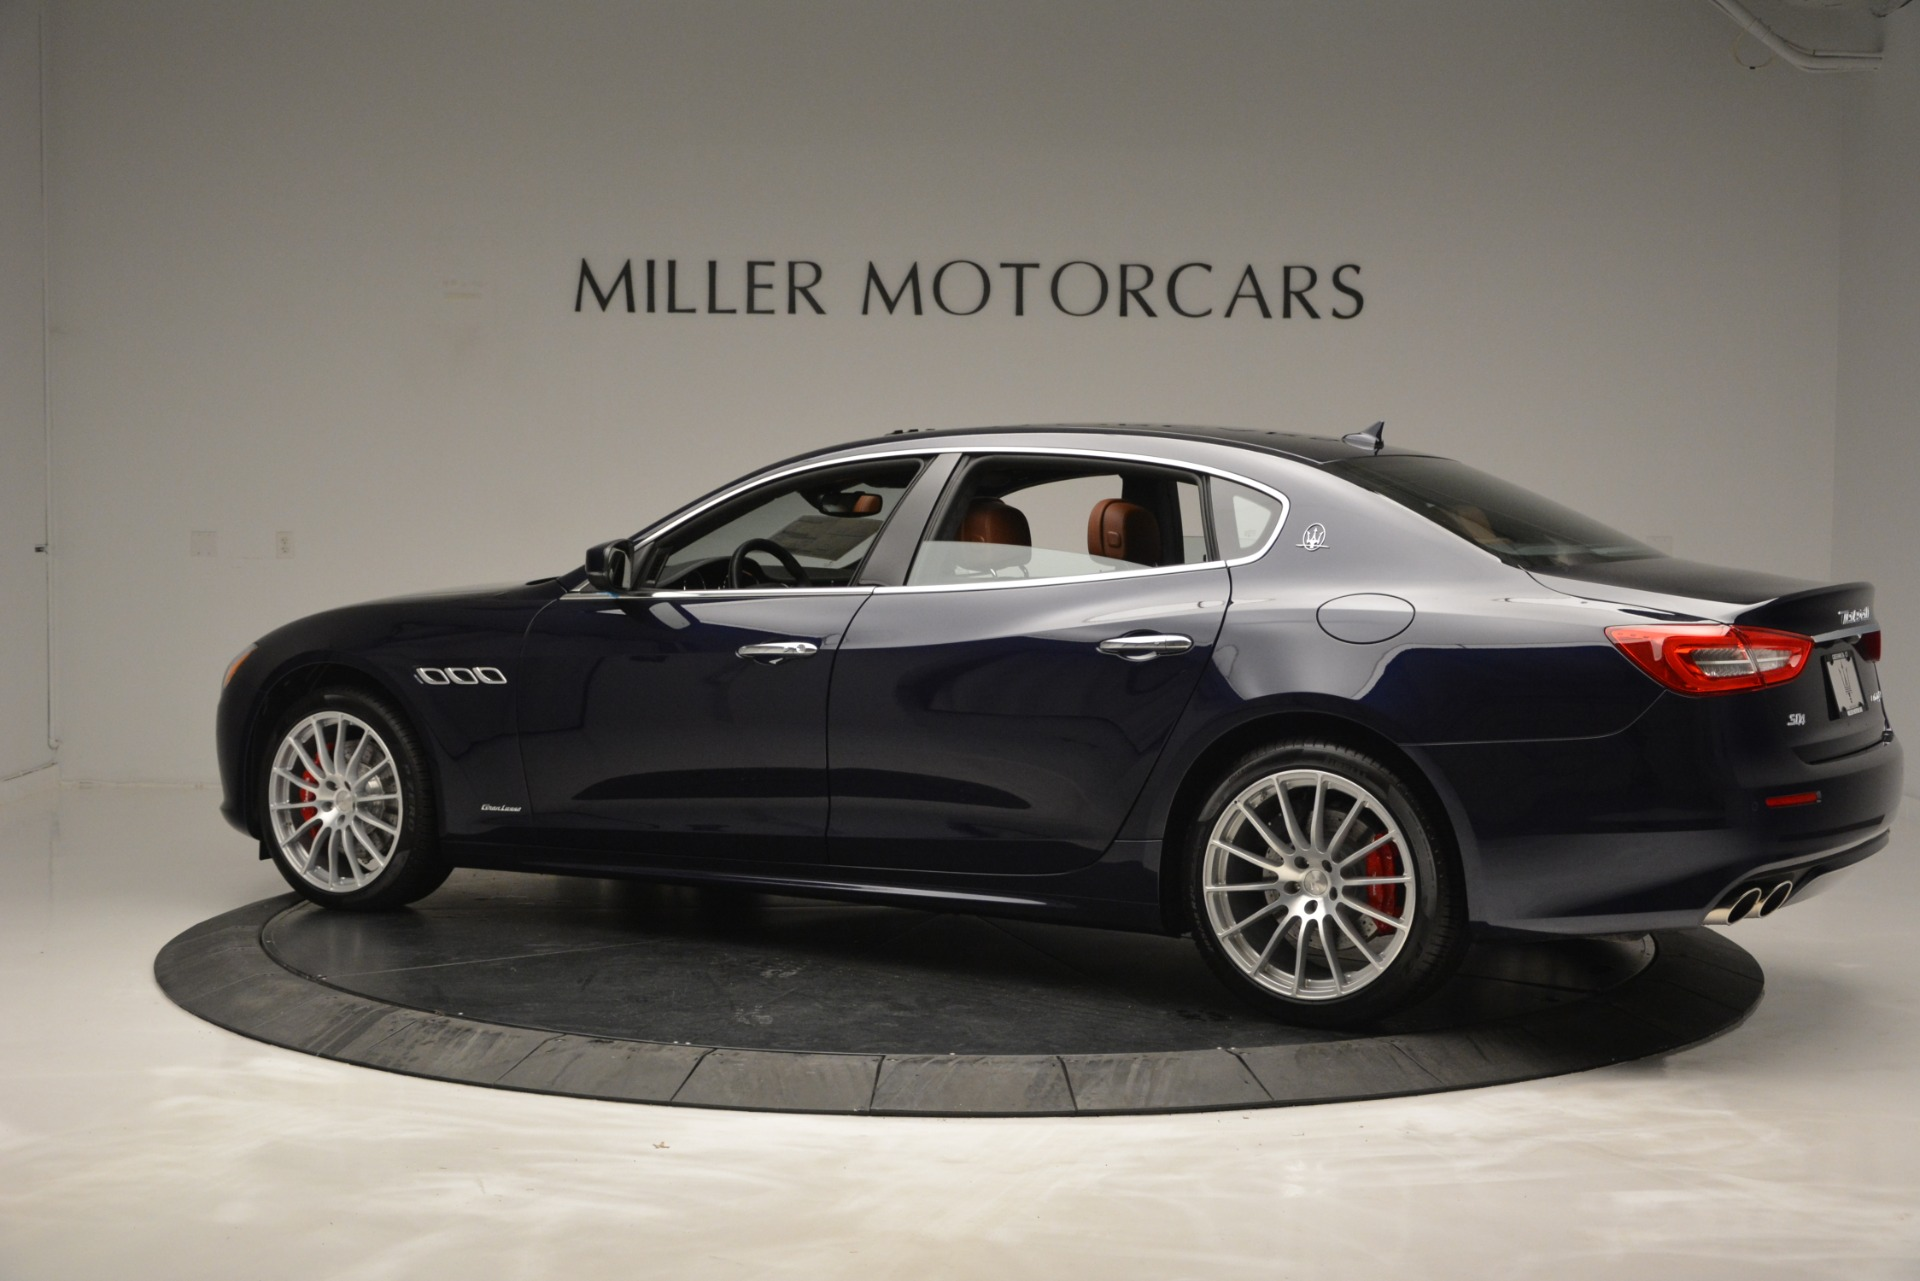 New 2019 Maserati Quattroporte S Q4 GranLusso For Sale In Greenwich, CT 2620_p4